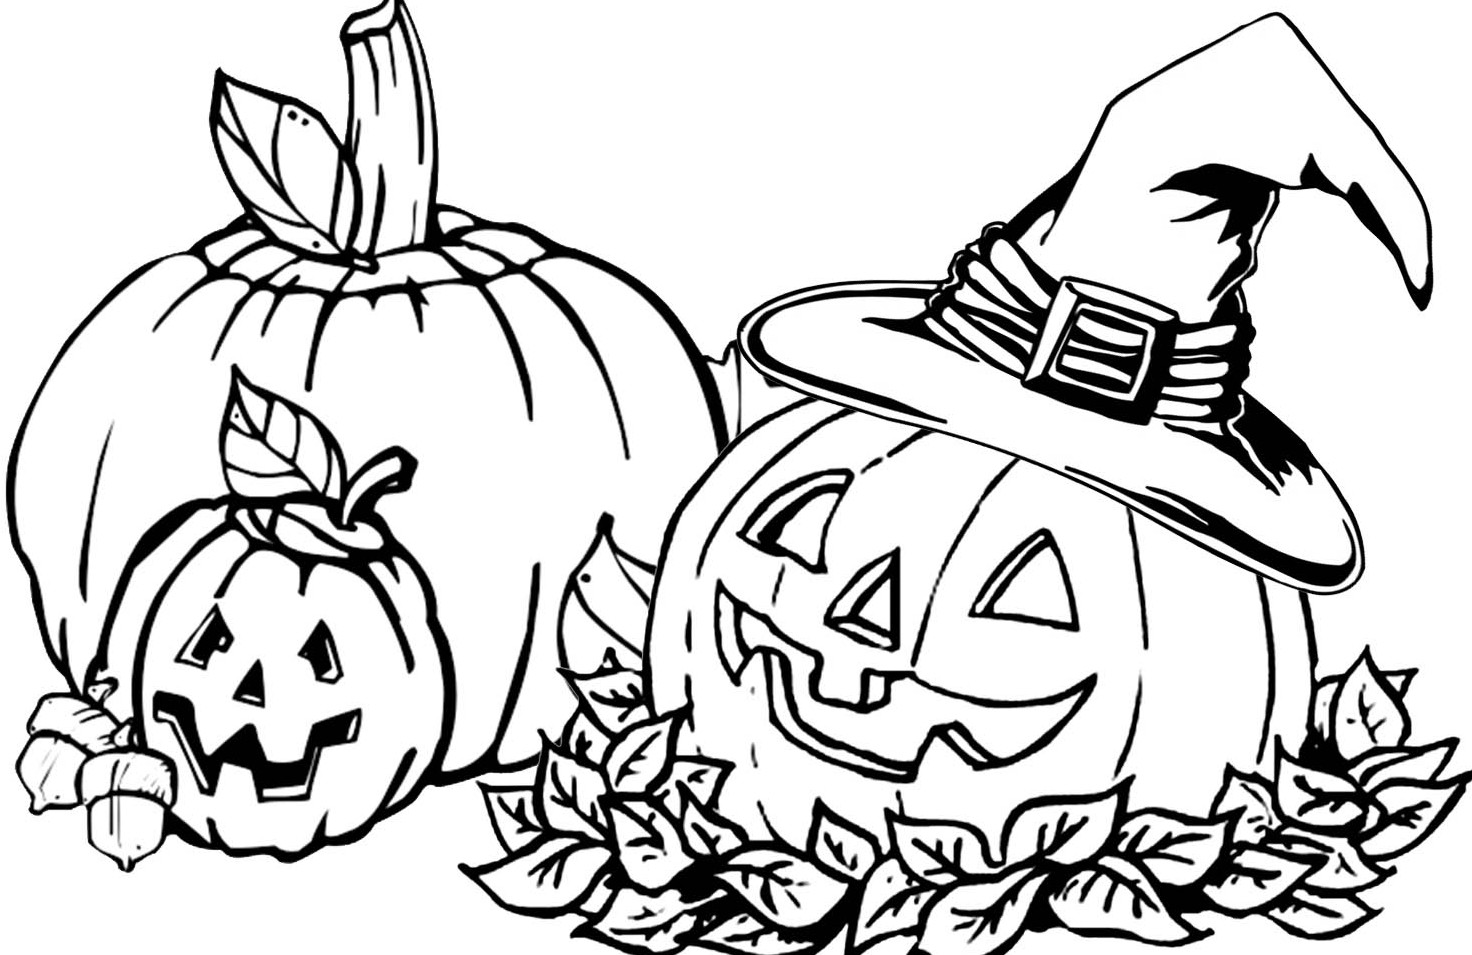 coloring pumpkin halloween clipart halloween pumpkin clipart black and white clipartme 1969 coloring pumpkin clipart halloween